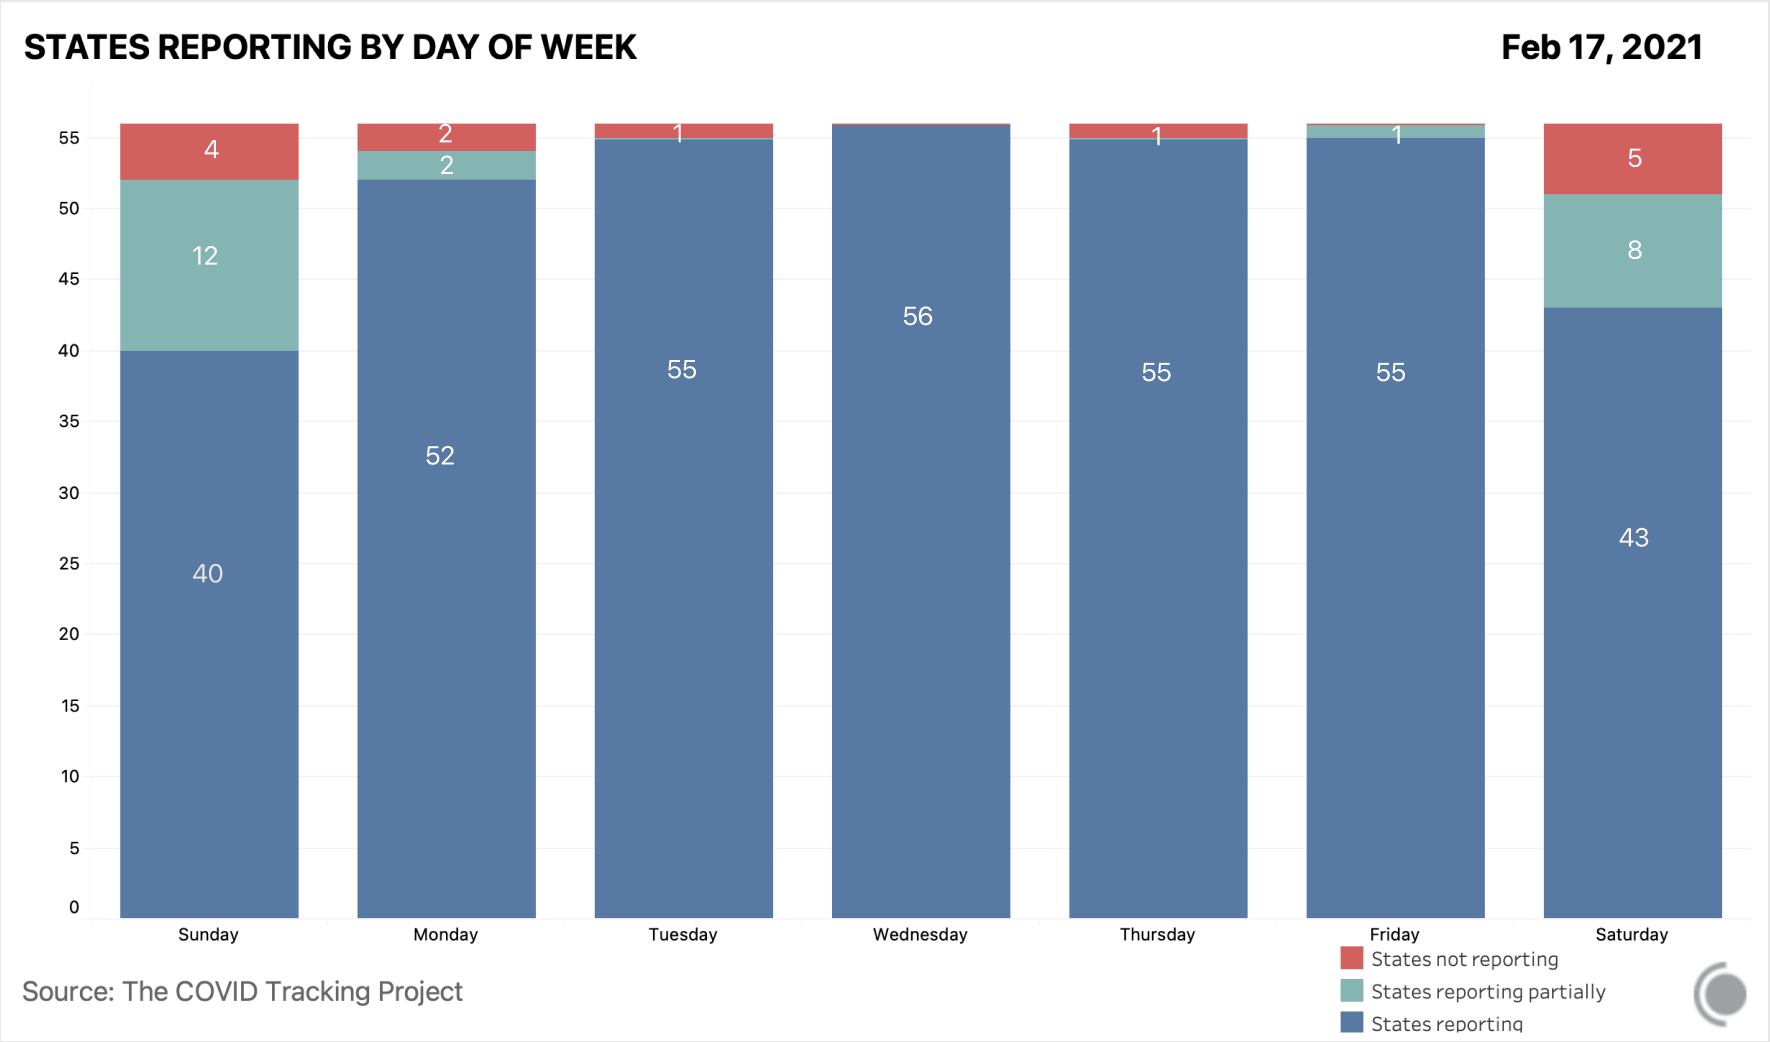 Chart showing how many states report each day of the week. Saturdays and Sundays are when the highest number of states either don't report at all or only partially report.